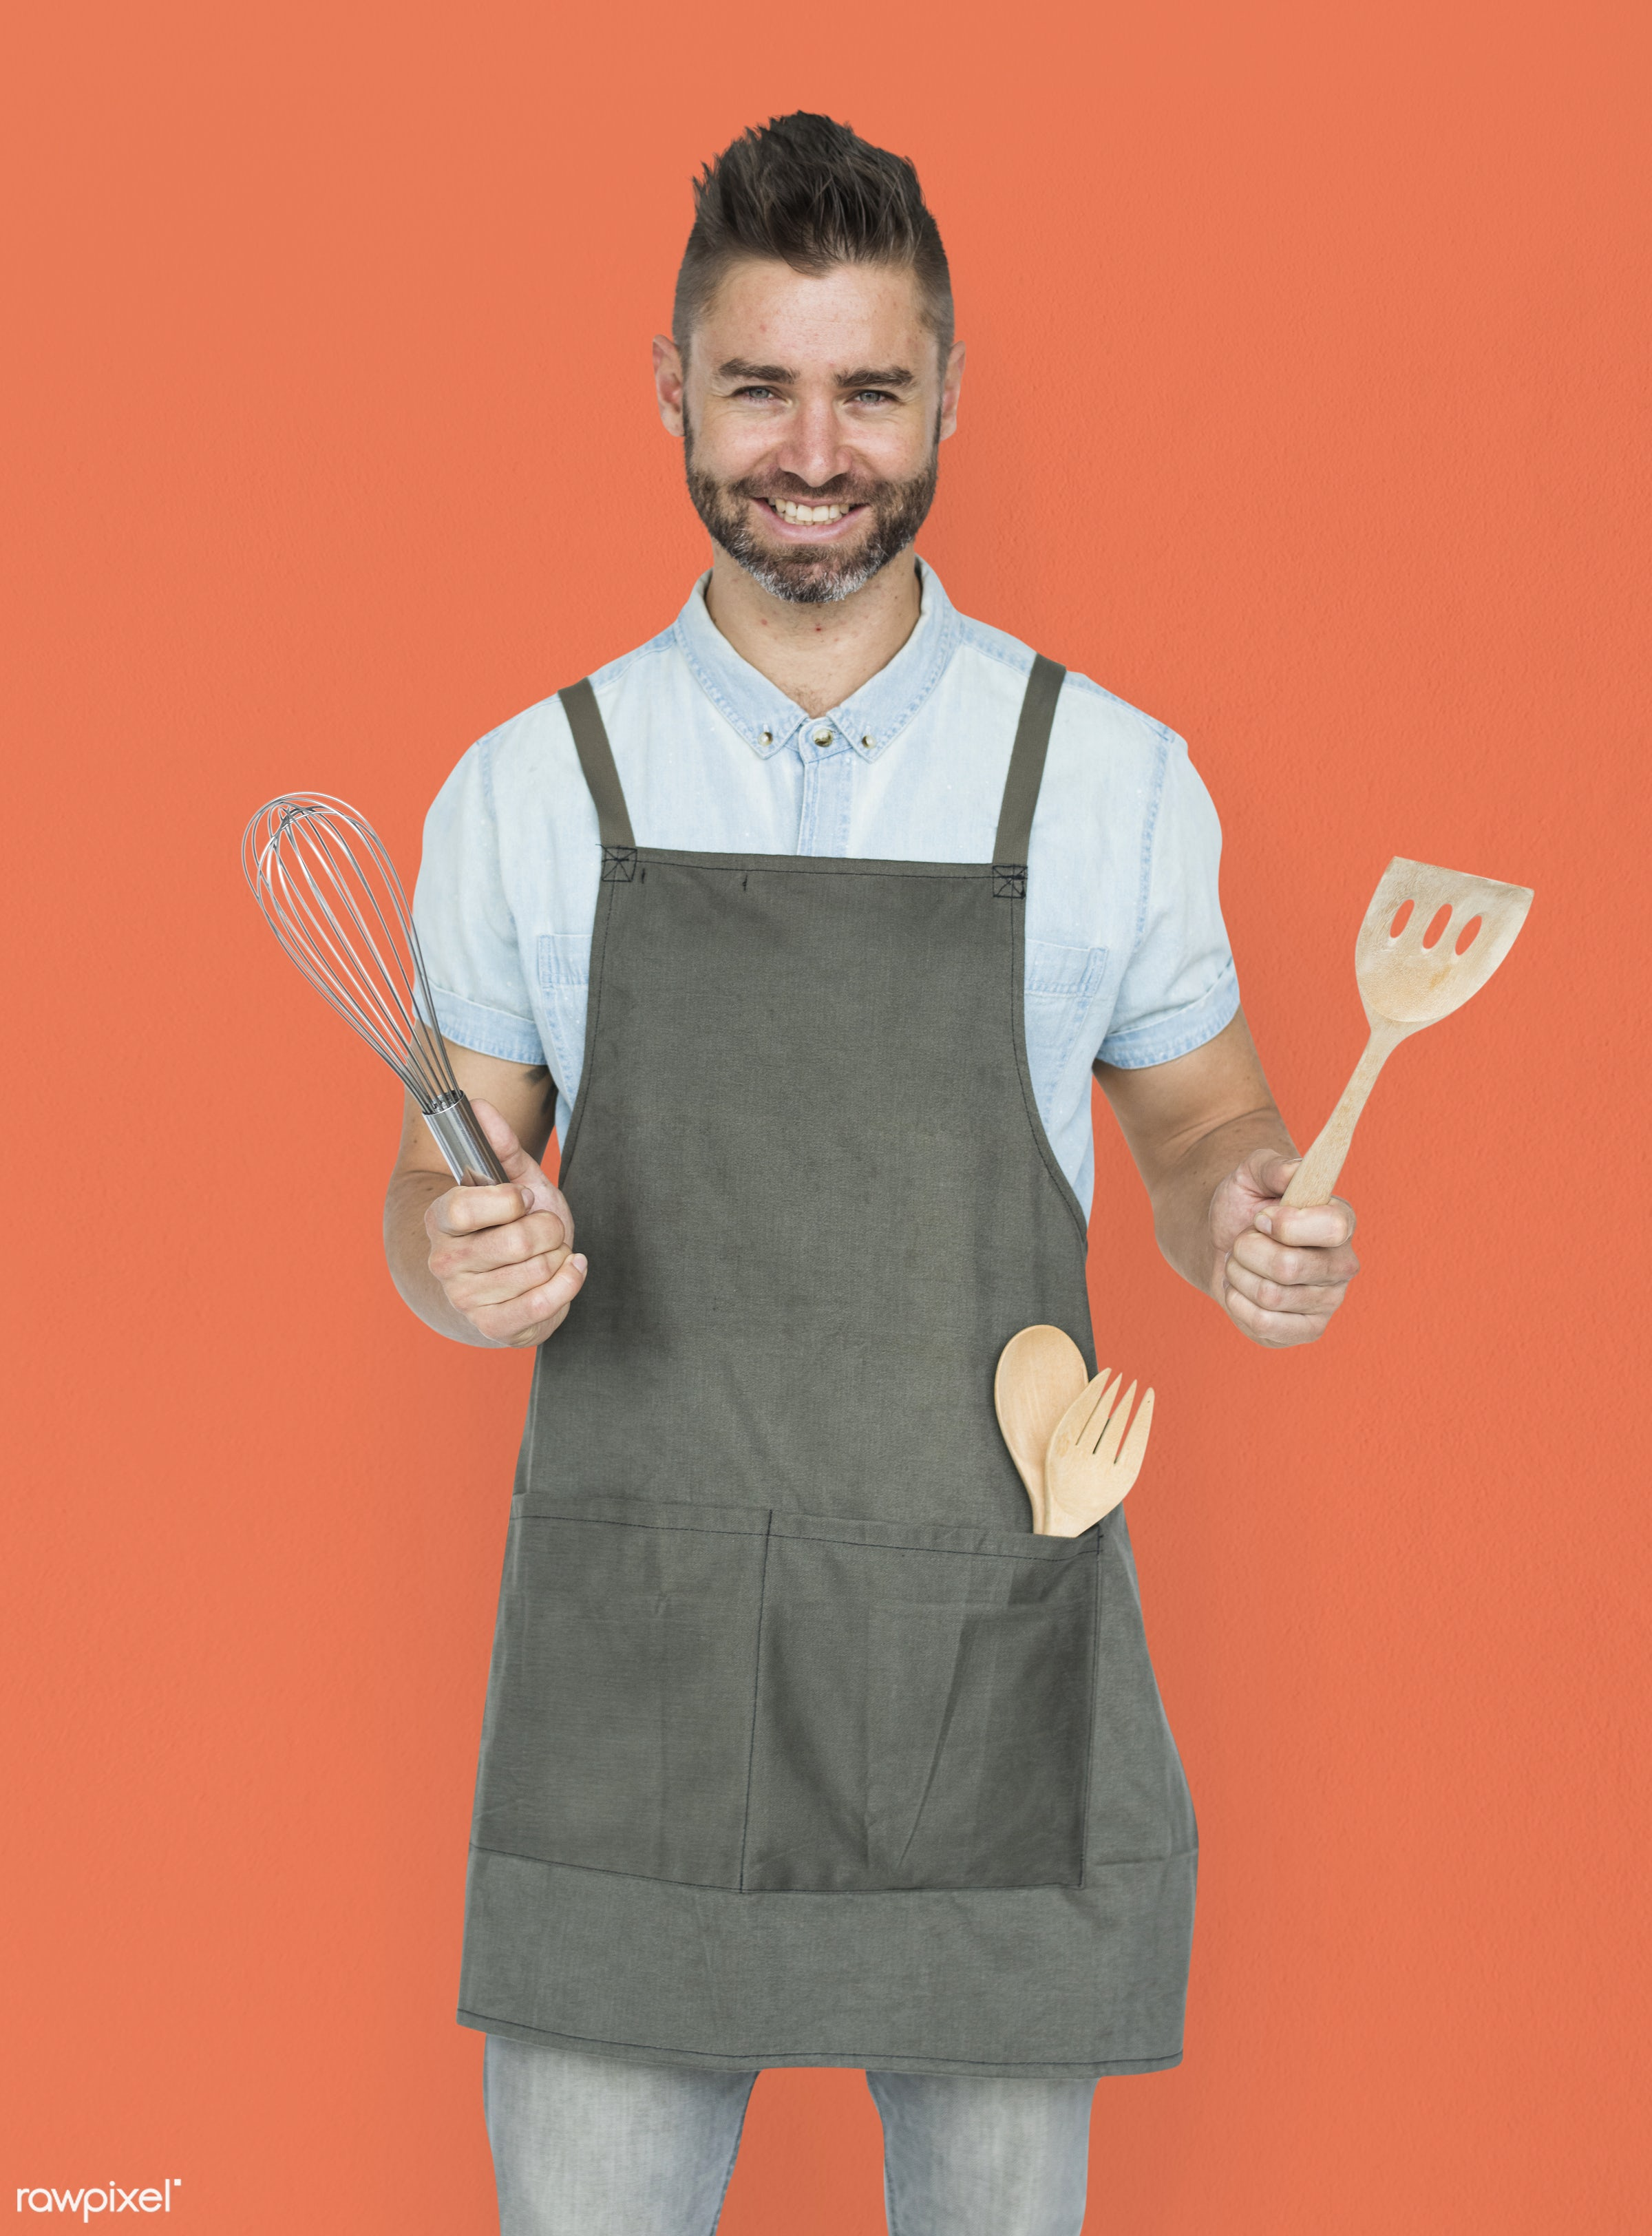 studio, person, model, race, people, style, solo, casual, lifestyle, cooking, man, orange, isolated, guy, male, gesture,...